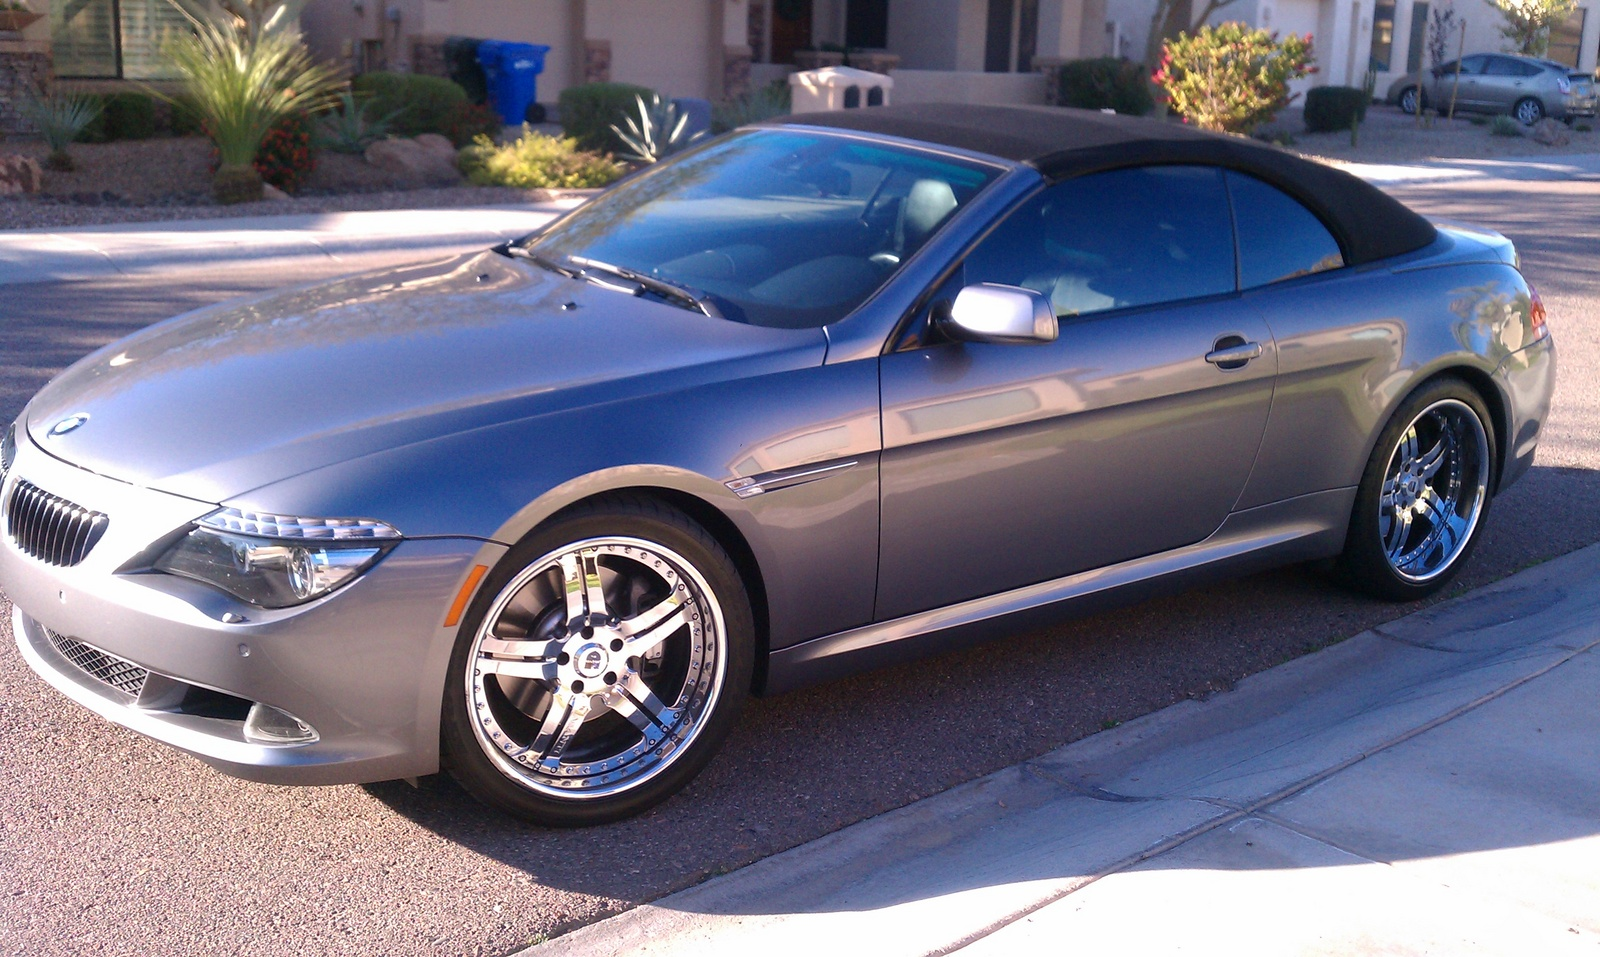 2008 Bmw 6 Series Convertible Picture of 2008 bmw 6 series